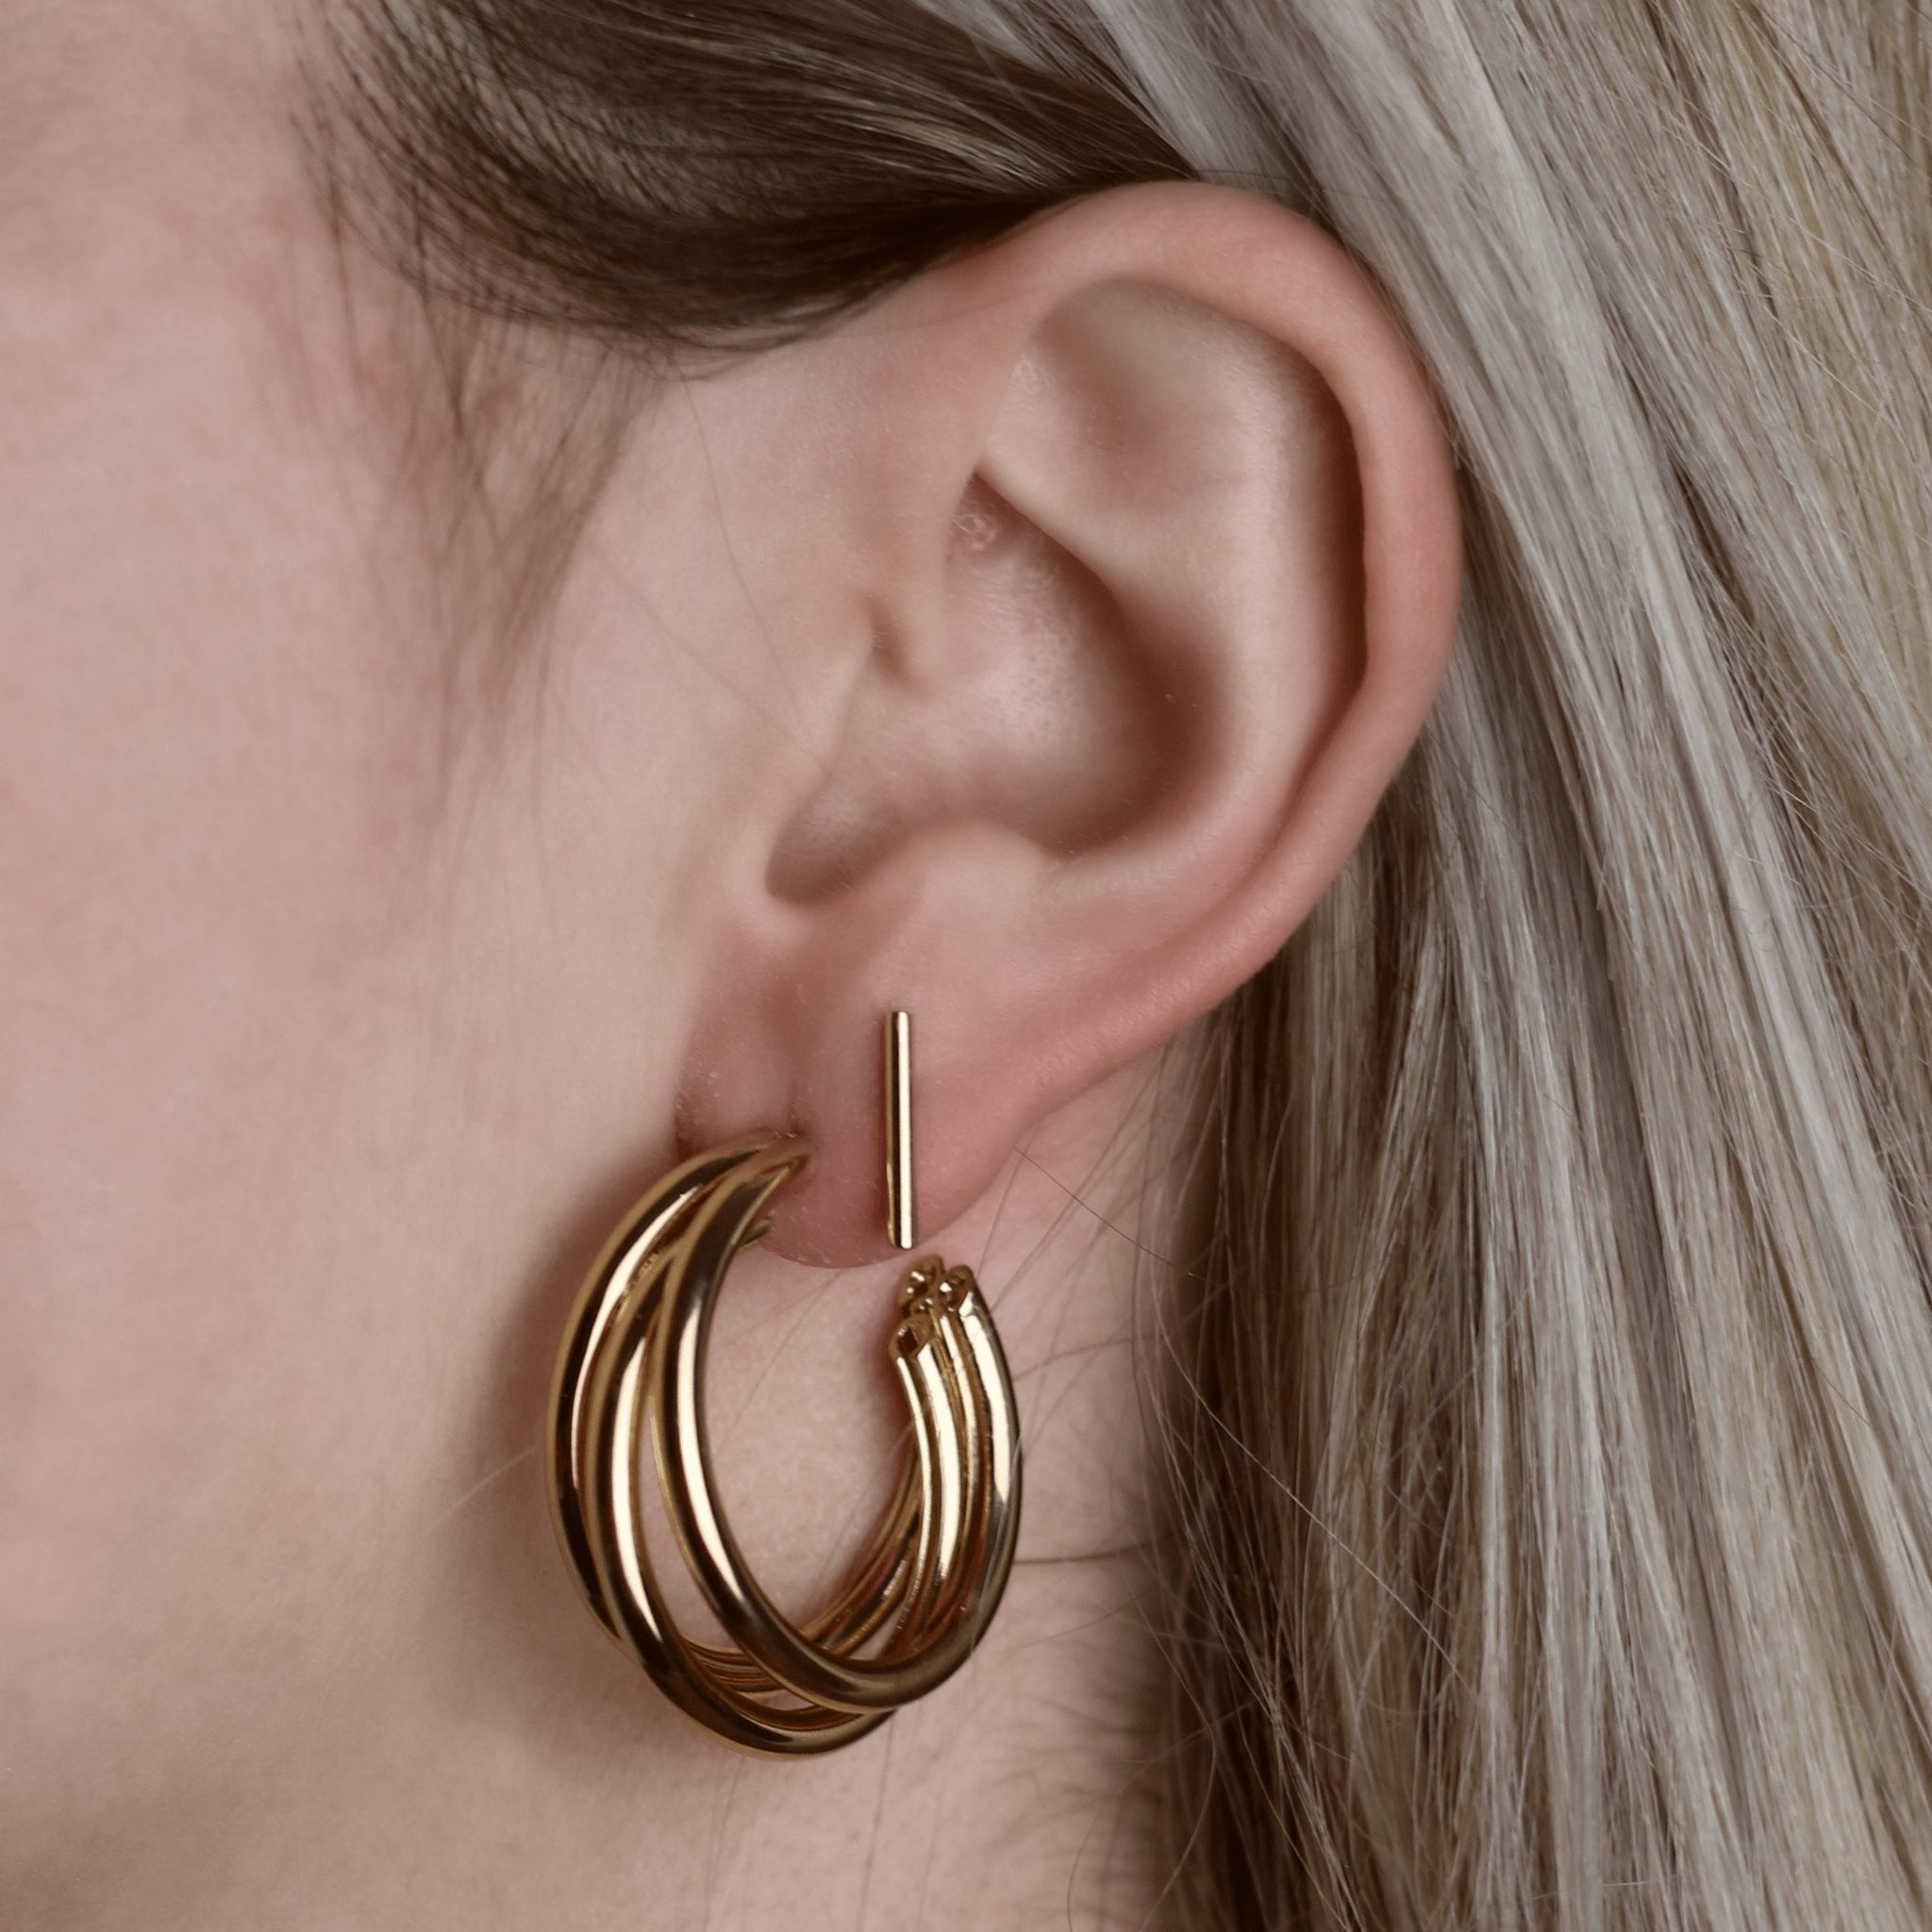 Triple Hoop Earrings Gold Medium